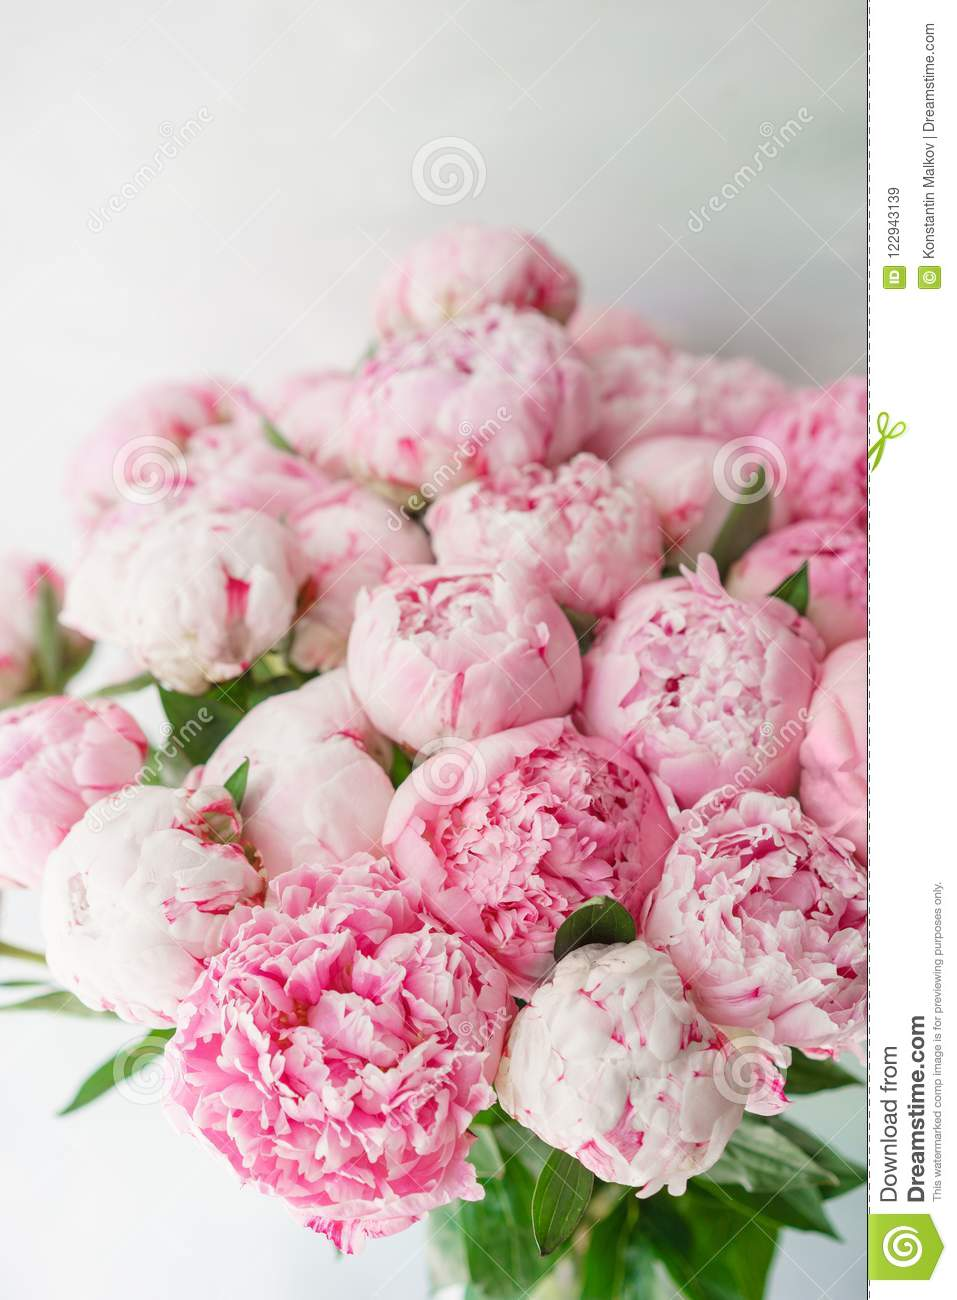 pink peonies . floral composition, daylight. wallpaper. lovely